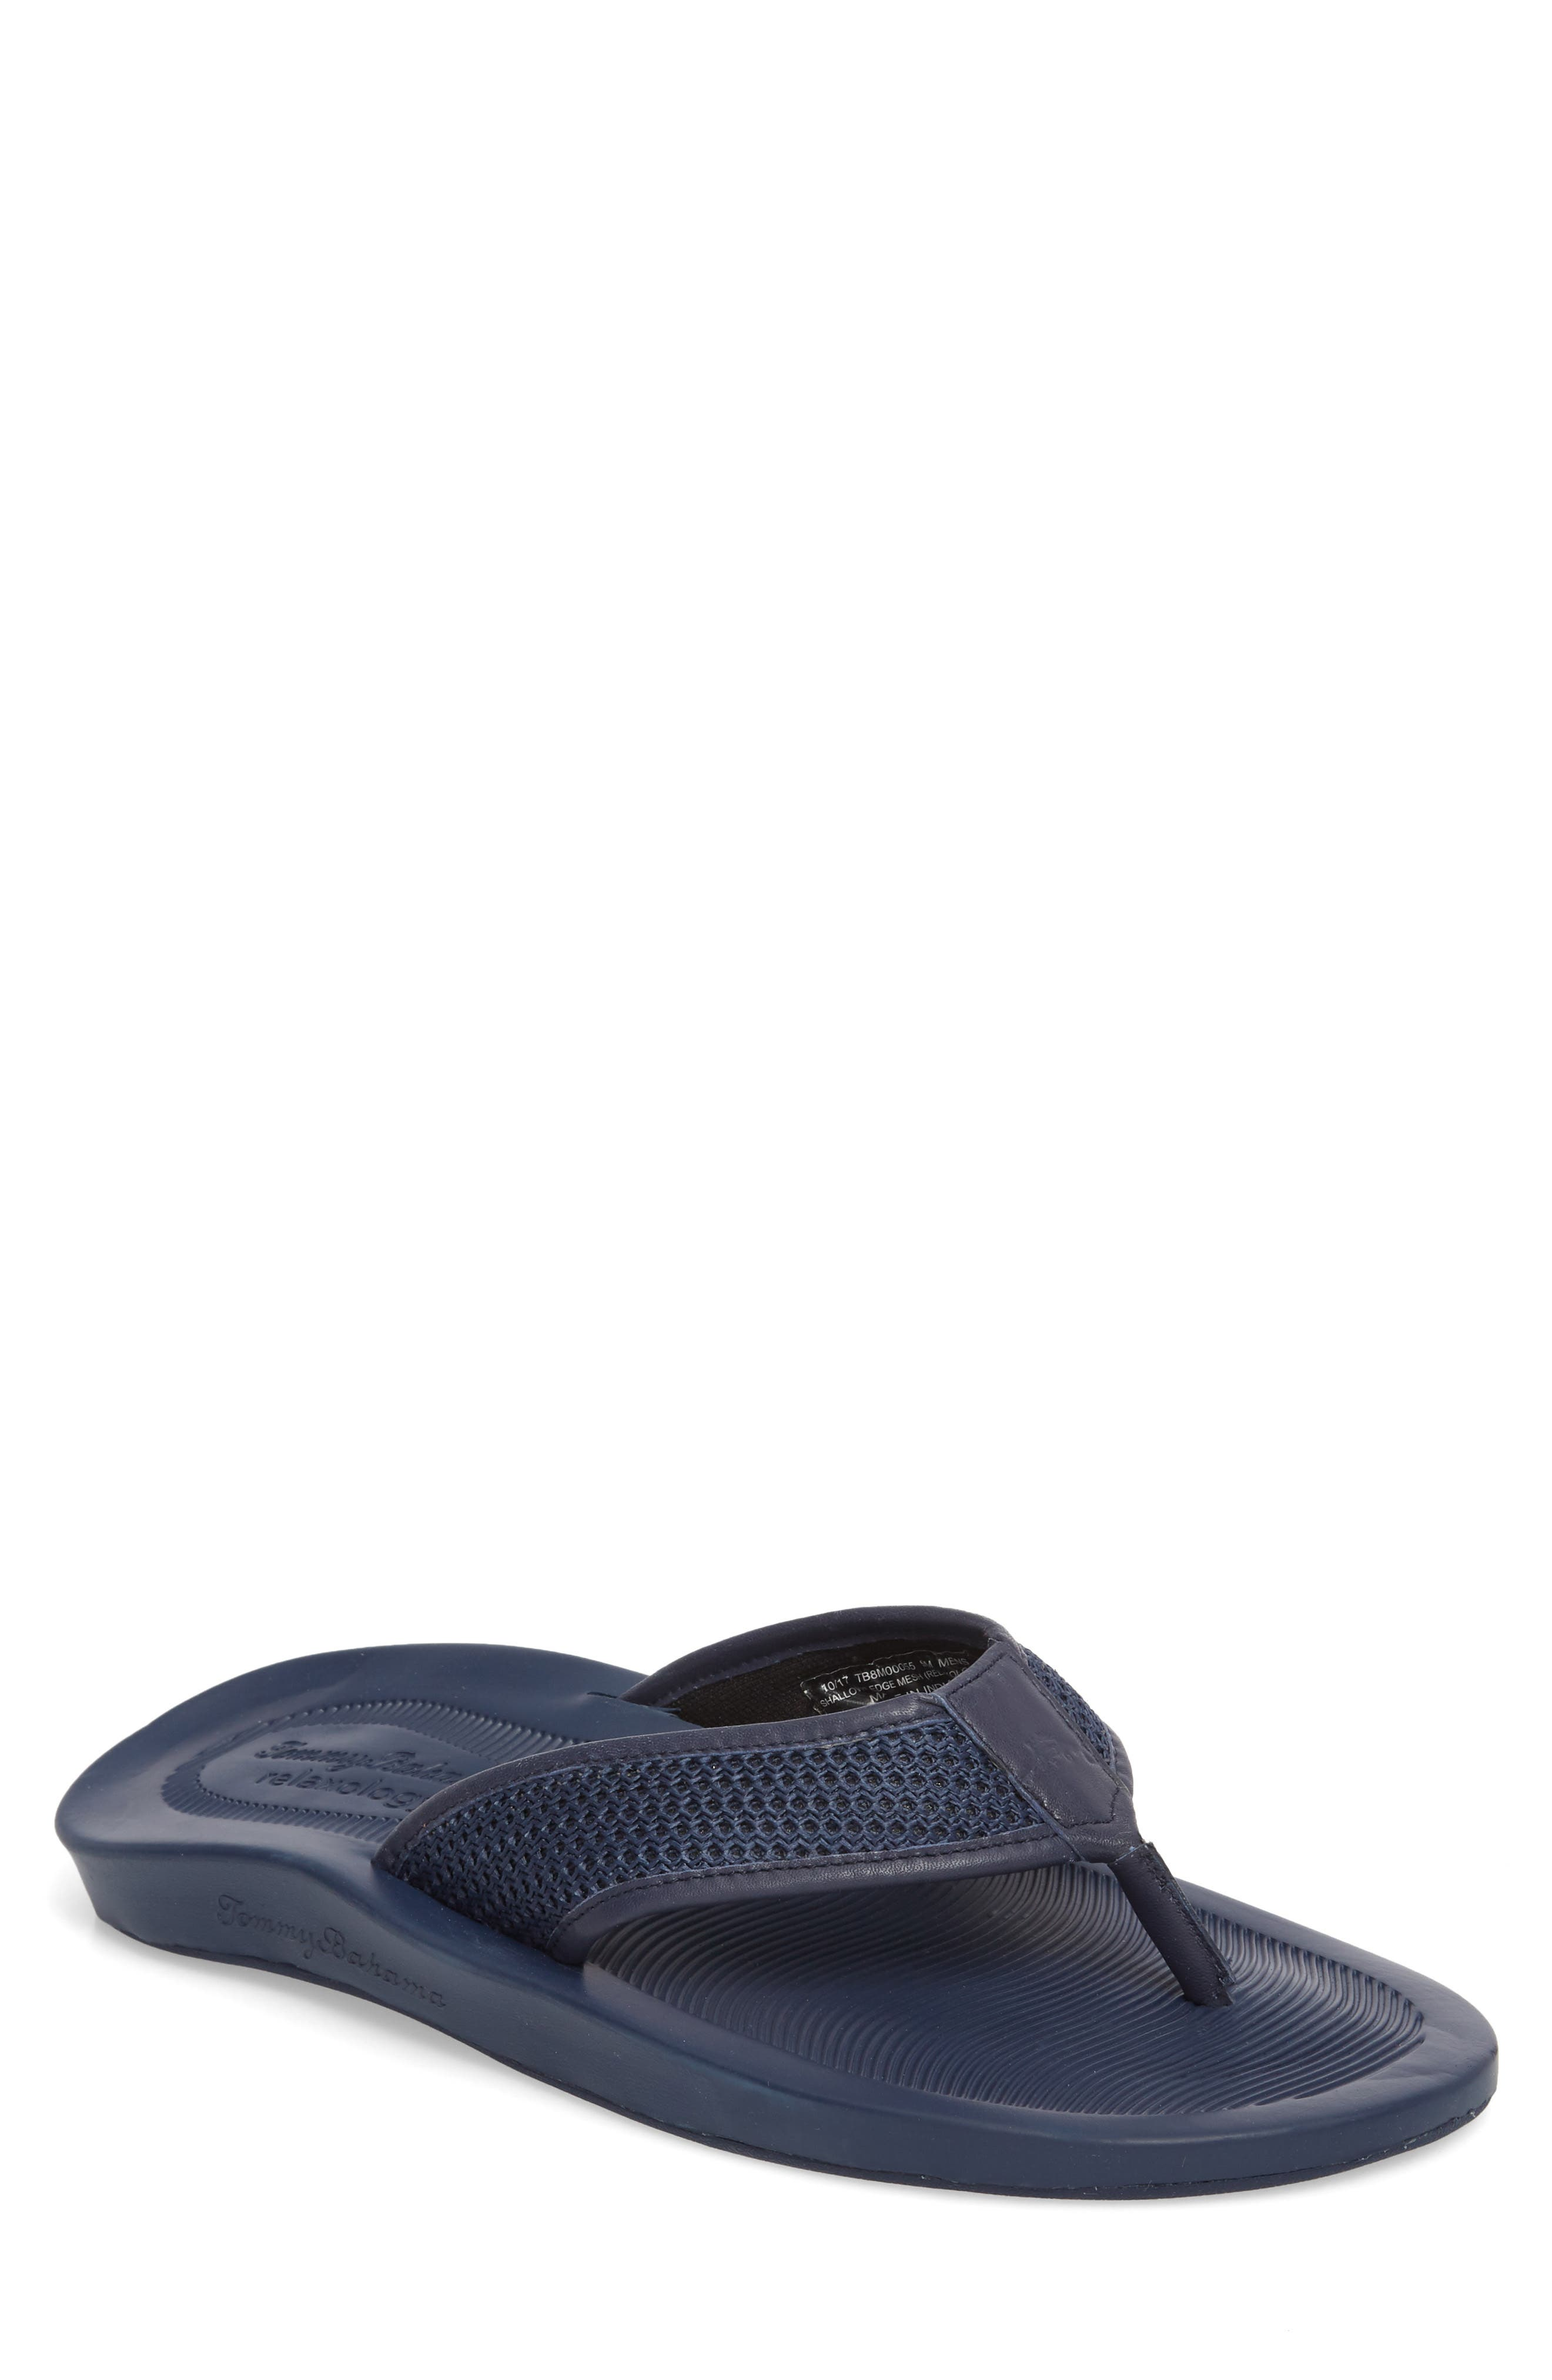 Shallows Edge Mesh Flip Flop,                         Main,                         color, Navy Mesh/ Leather